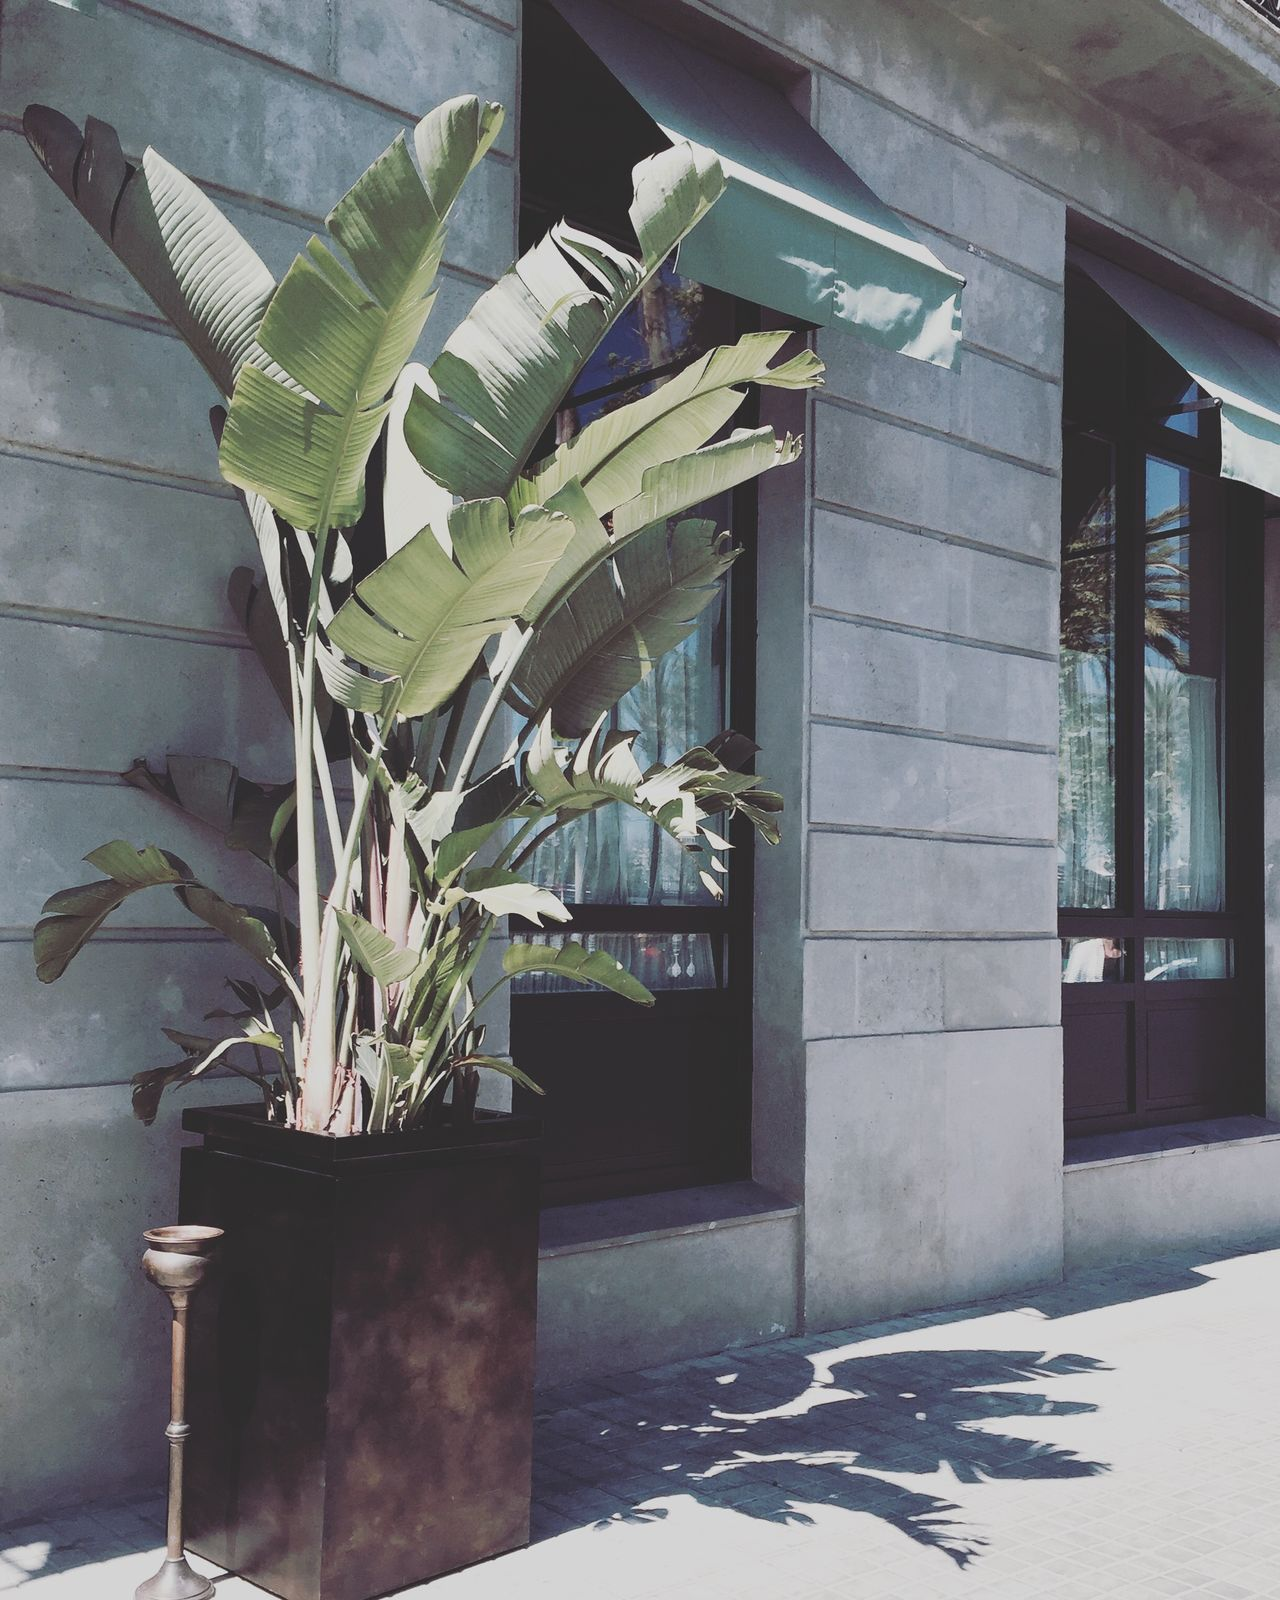 Architecture Banana Banana Leaf Building Exterior Day Exotic Growth Hotel Indoors  Nature No People Plant Smoking Still Life Summer Travel Travel Destinations Vacations